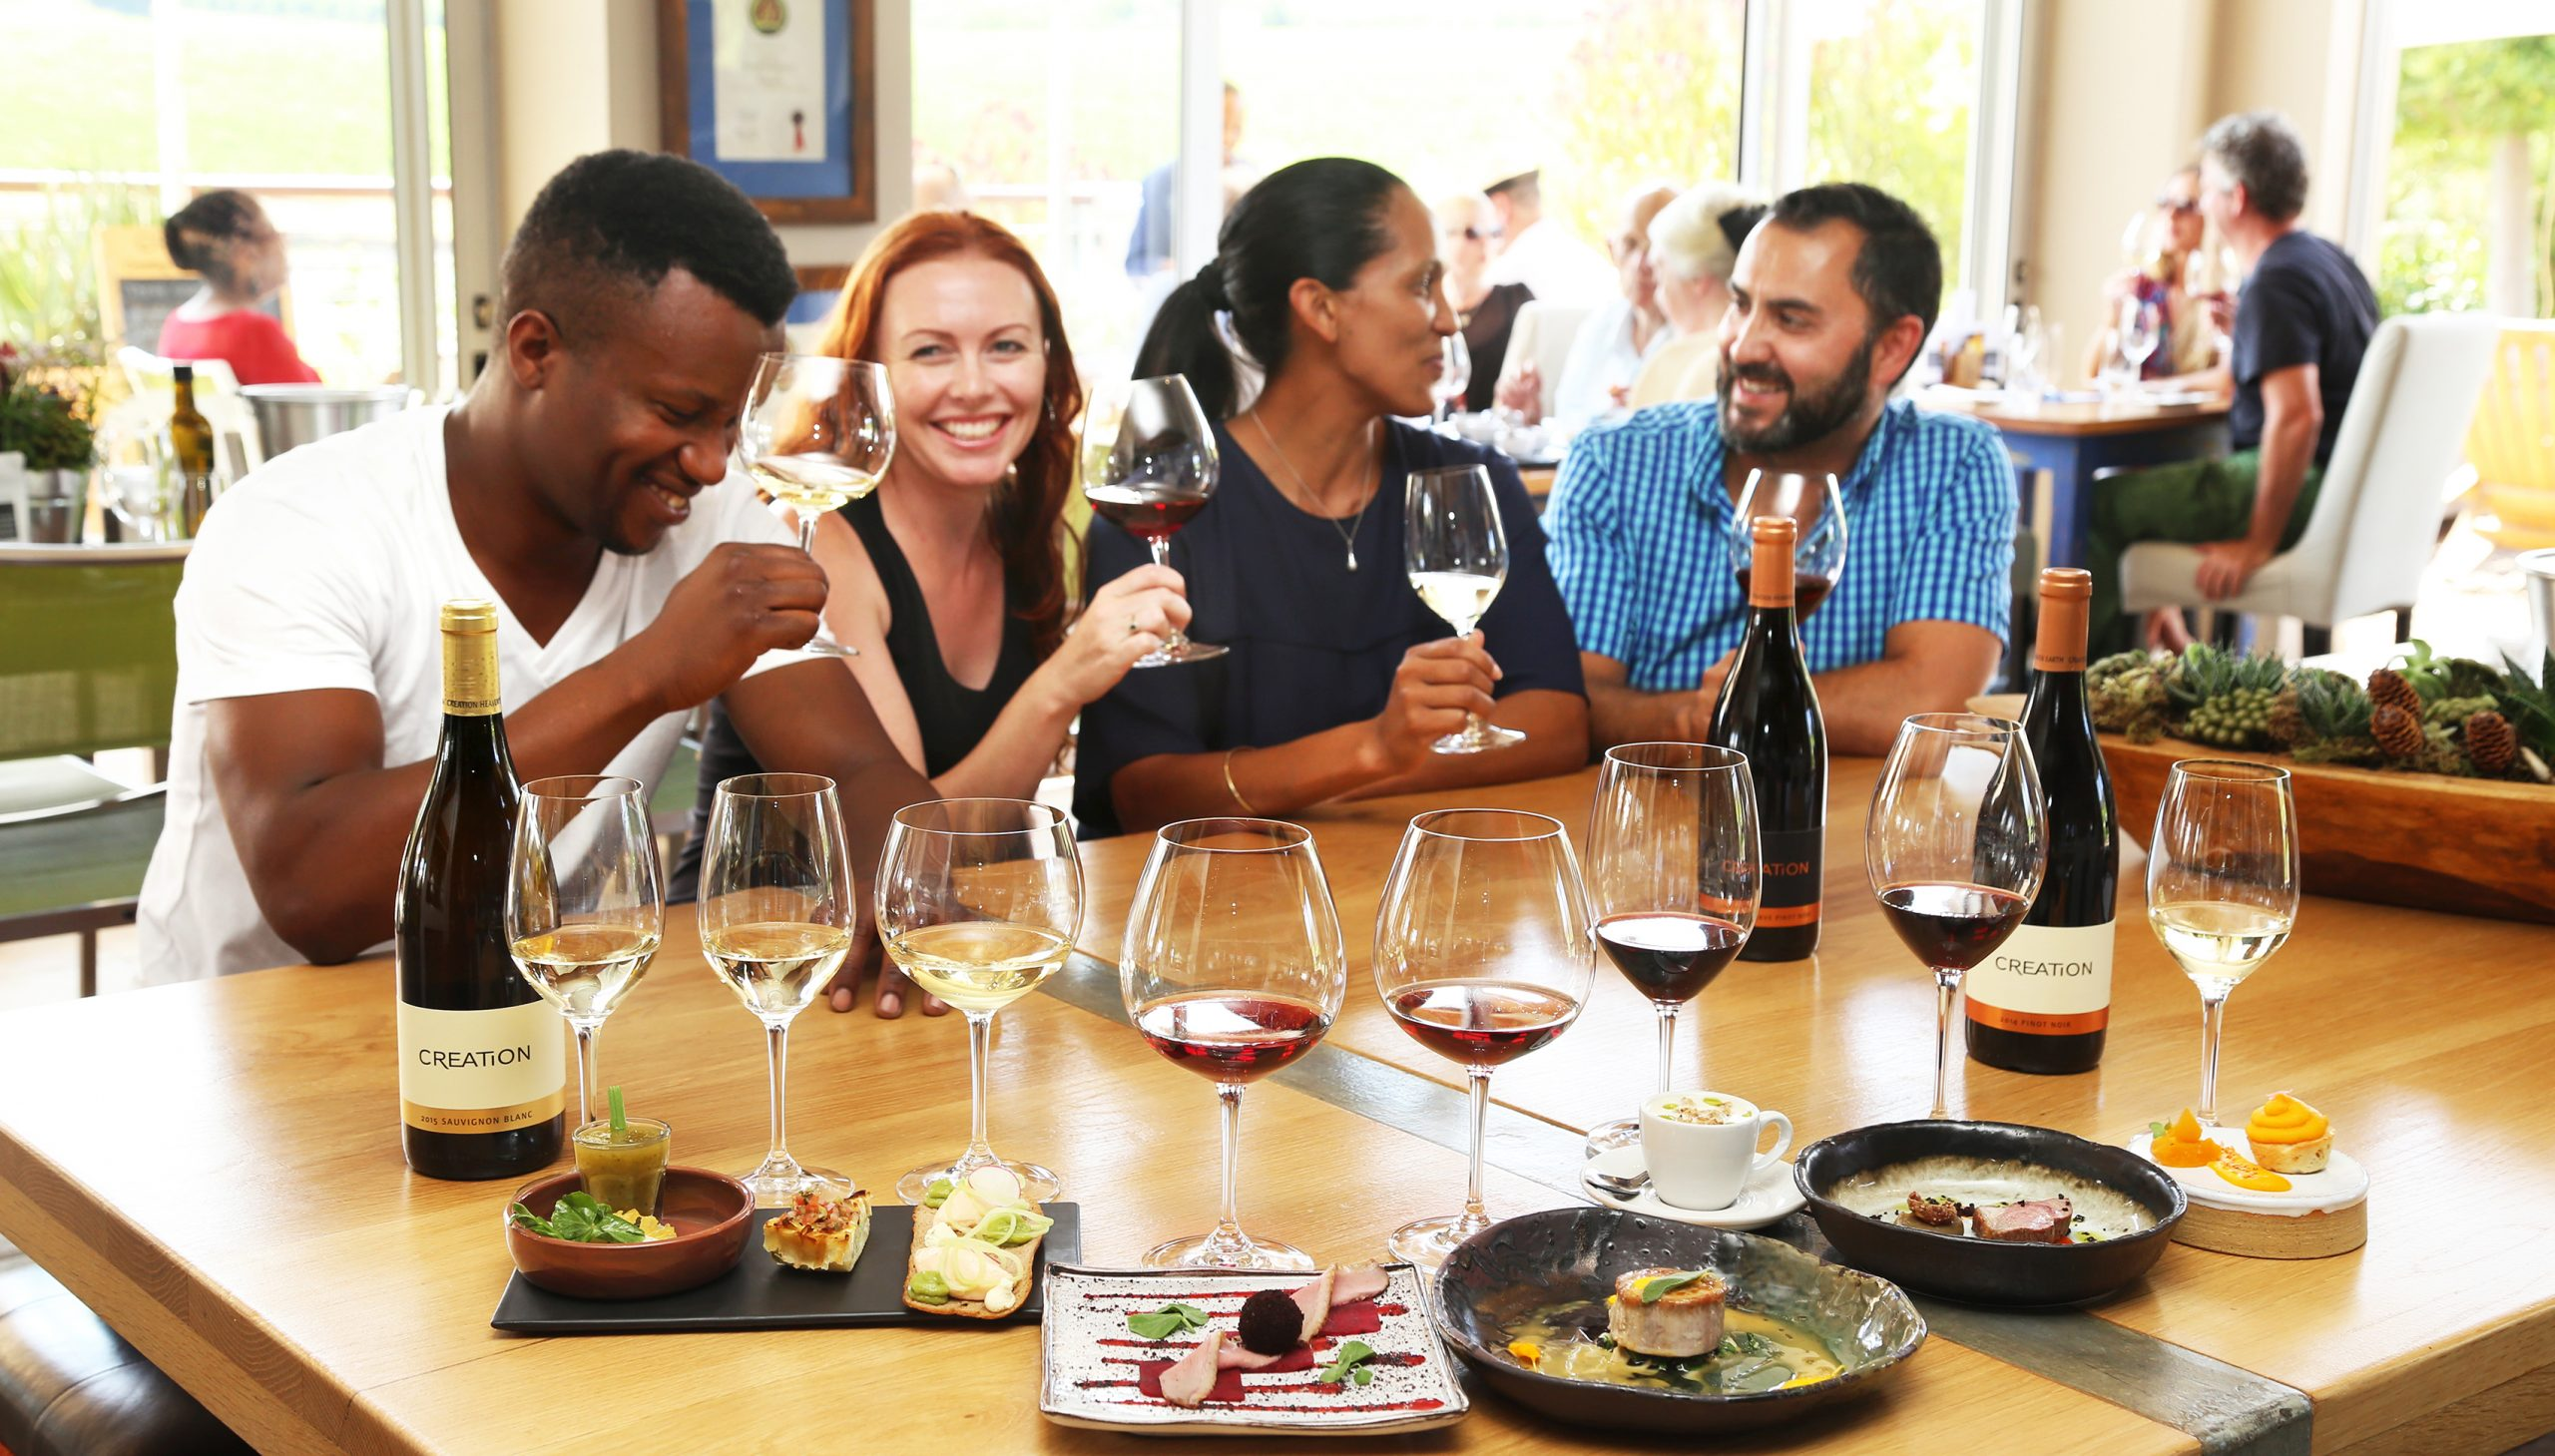 WWF-SA Backs New Sustainability Award In Wine And Food Tourism